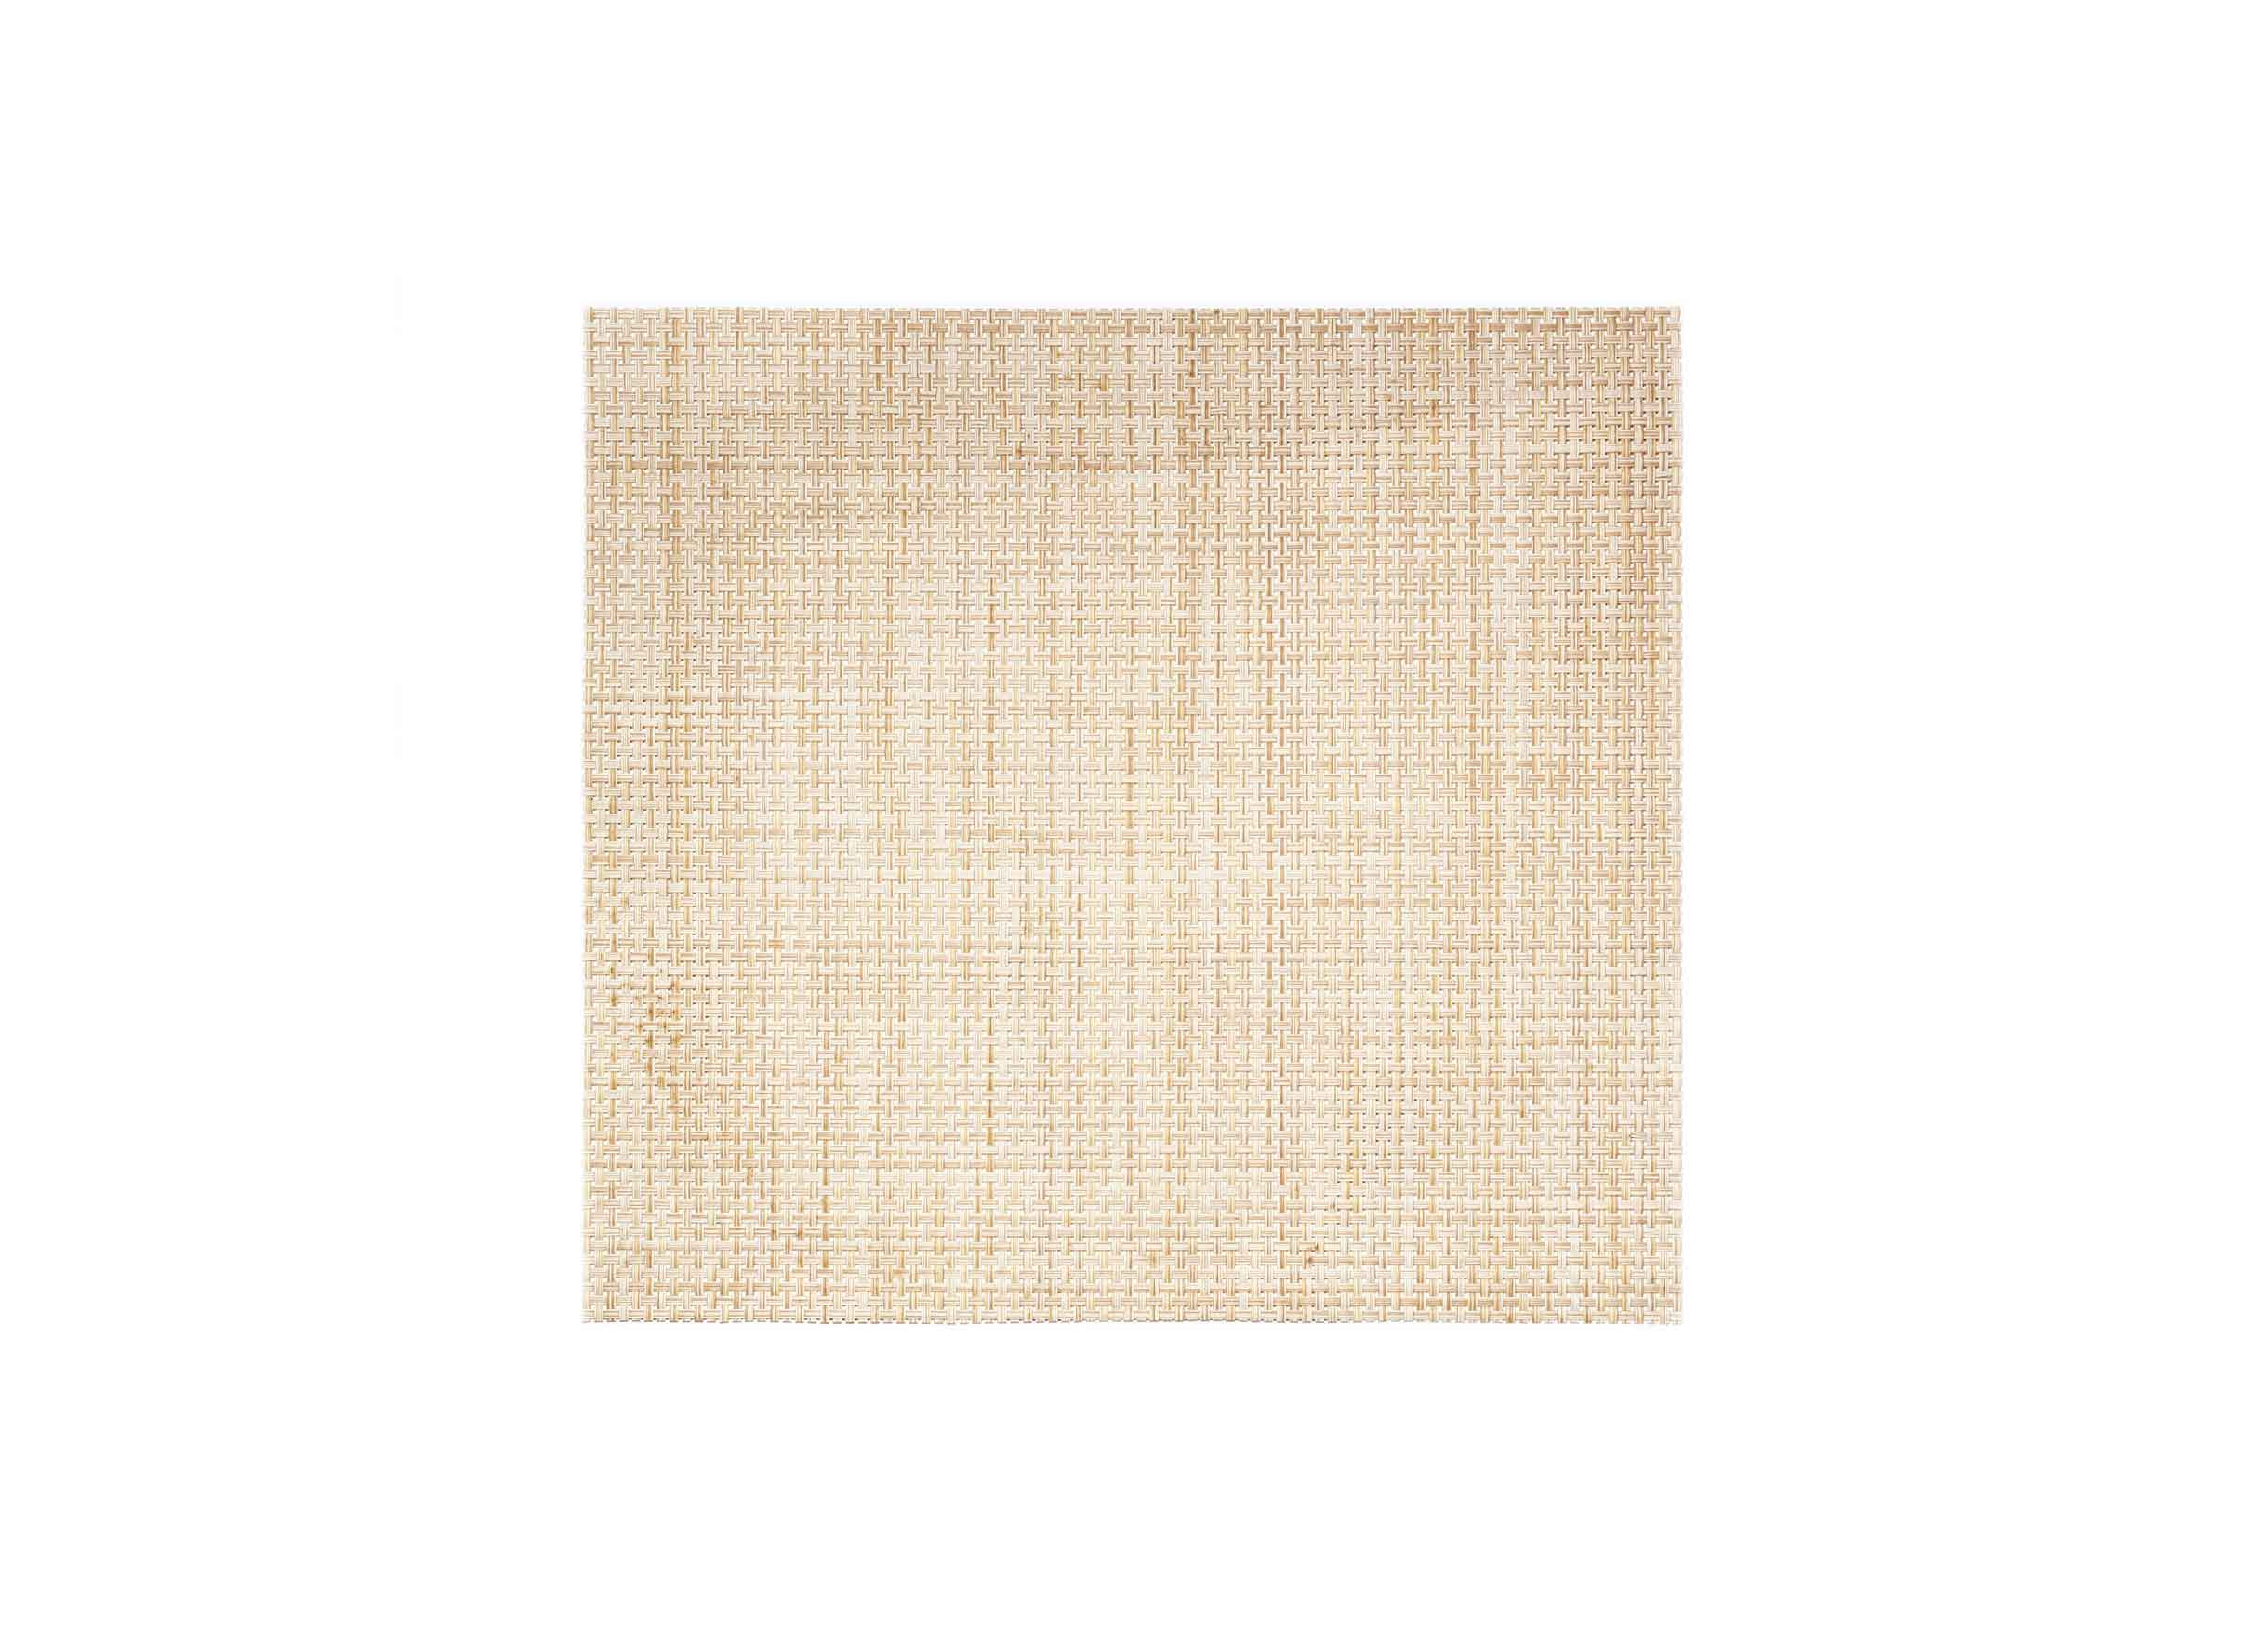 "14"" x 13"" Basketweave Mat - Natural"